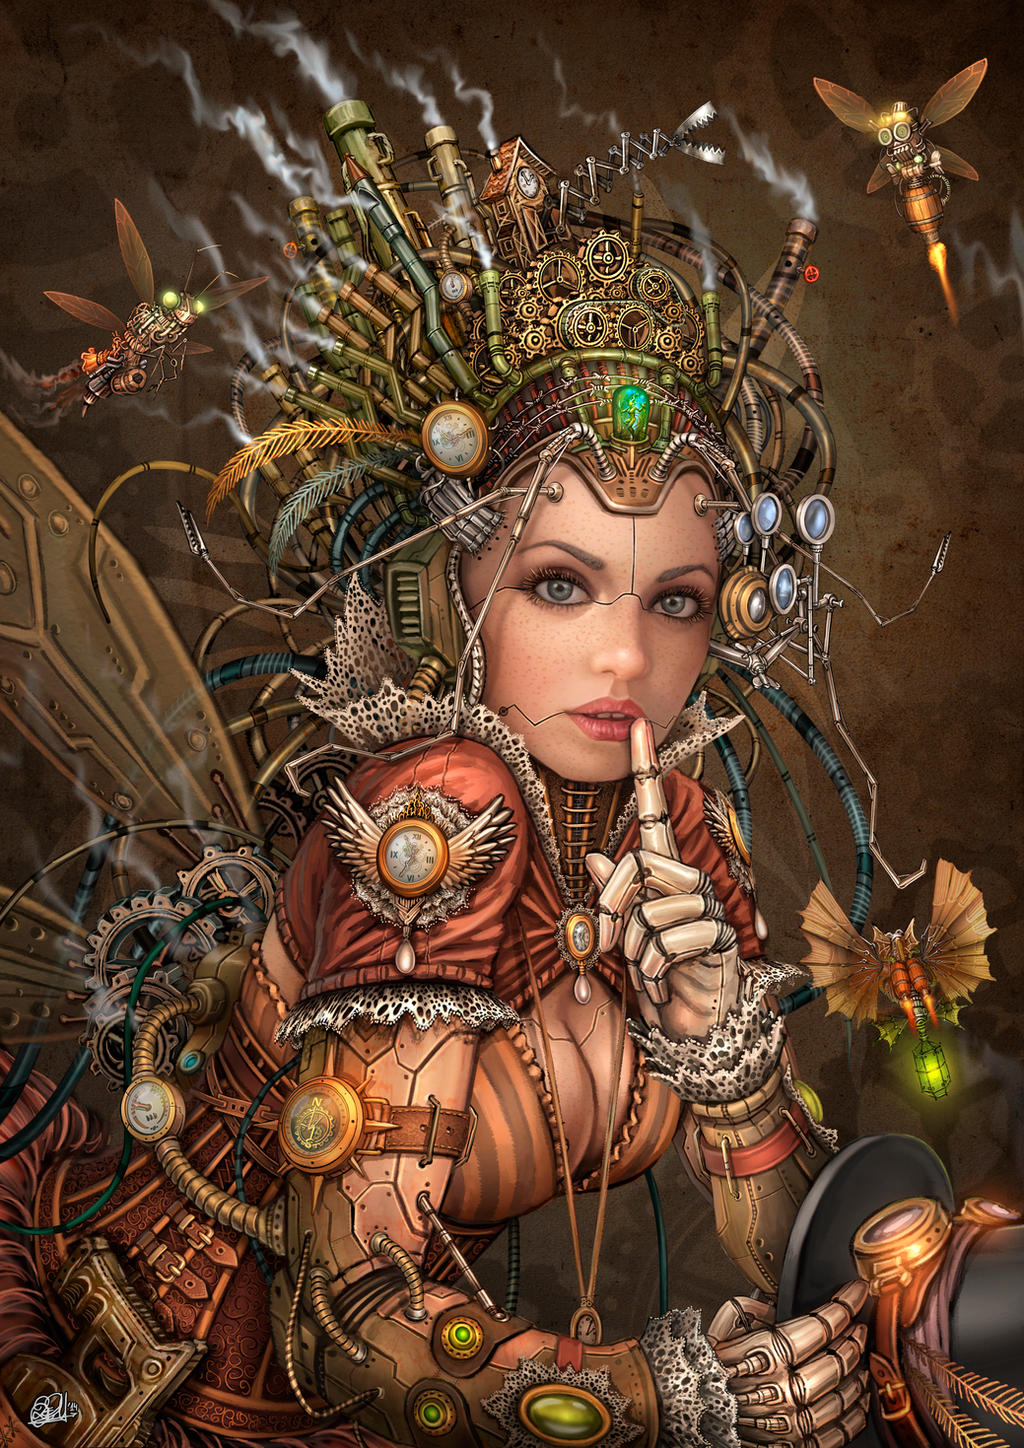 Silence Please - Steampunk Fairy by DarkAkelarre